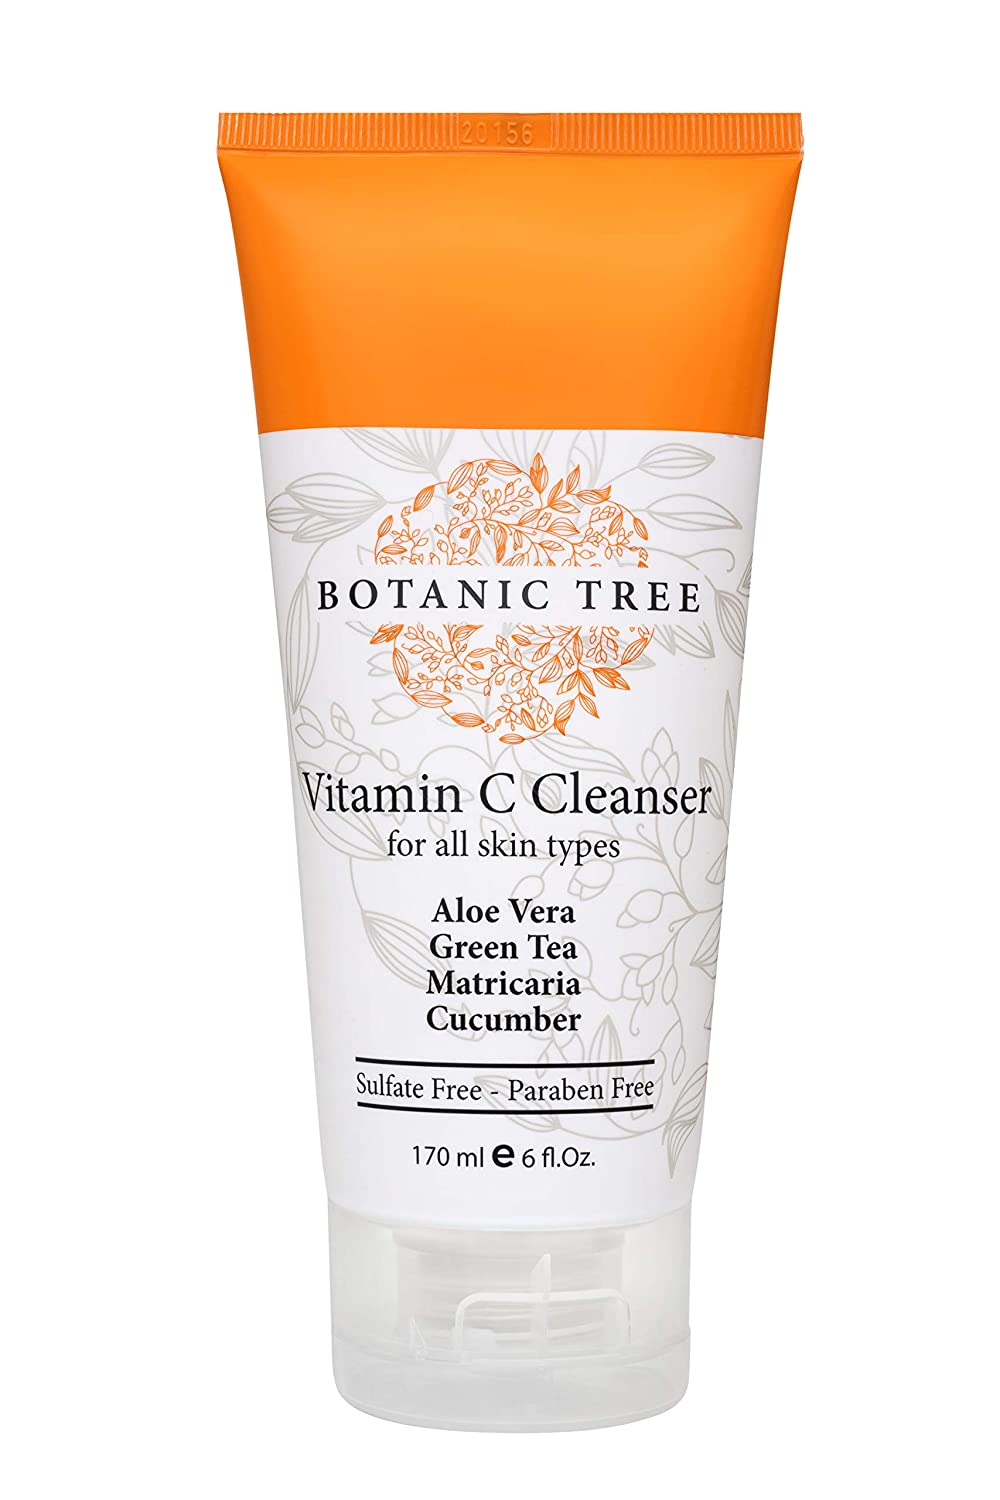 Botanic Tree Vitamin C Face Wash-Daily Skin Cleansing Formula Reduces Acne Breakouts, Blemishes, Wrinkles-Anti Aging Facial Cleanser w/ Organic Ingredients- Double Cleanse w/ Glycolic Acid Face Wash - 6 Oz: Beauty